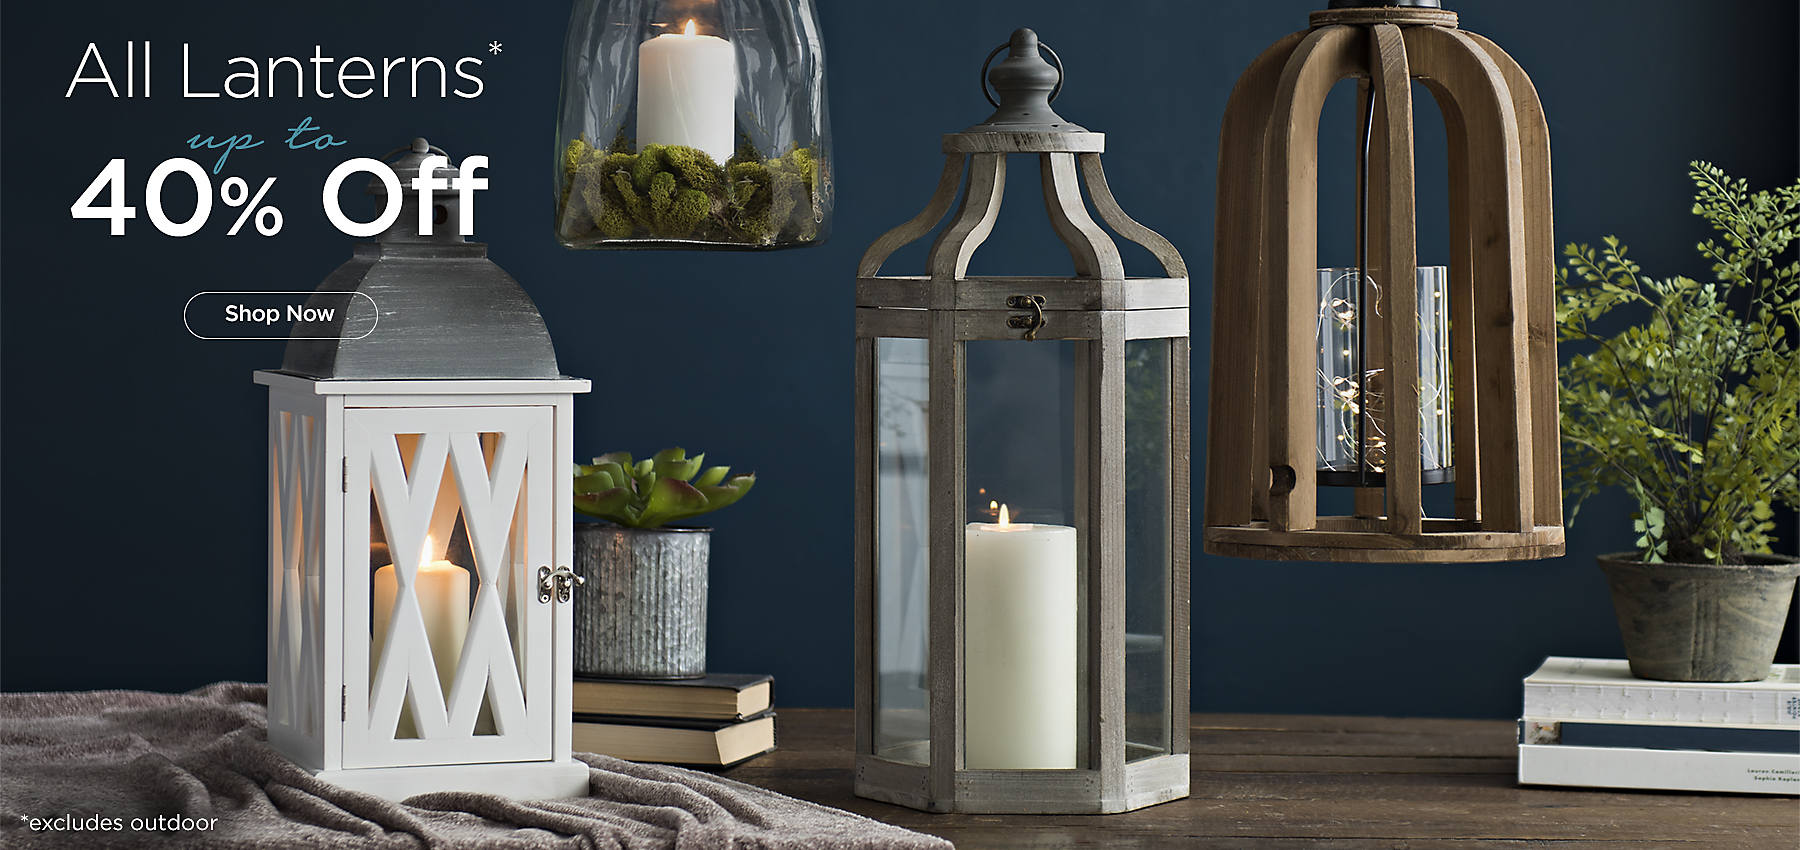 Limited Time Only - Up to 40% Off All Lanterns - Excludes Outdoor